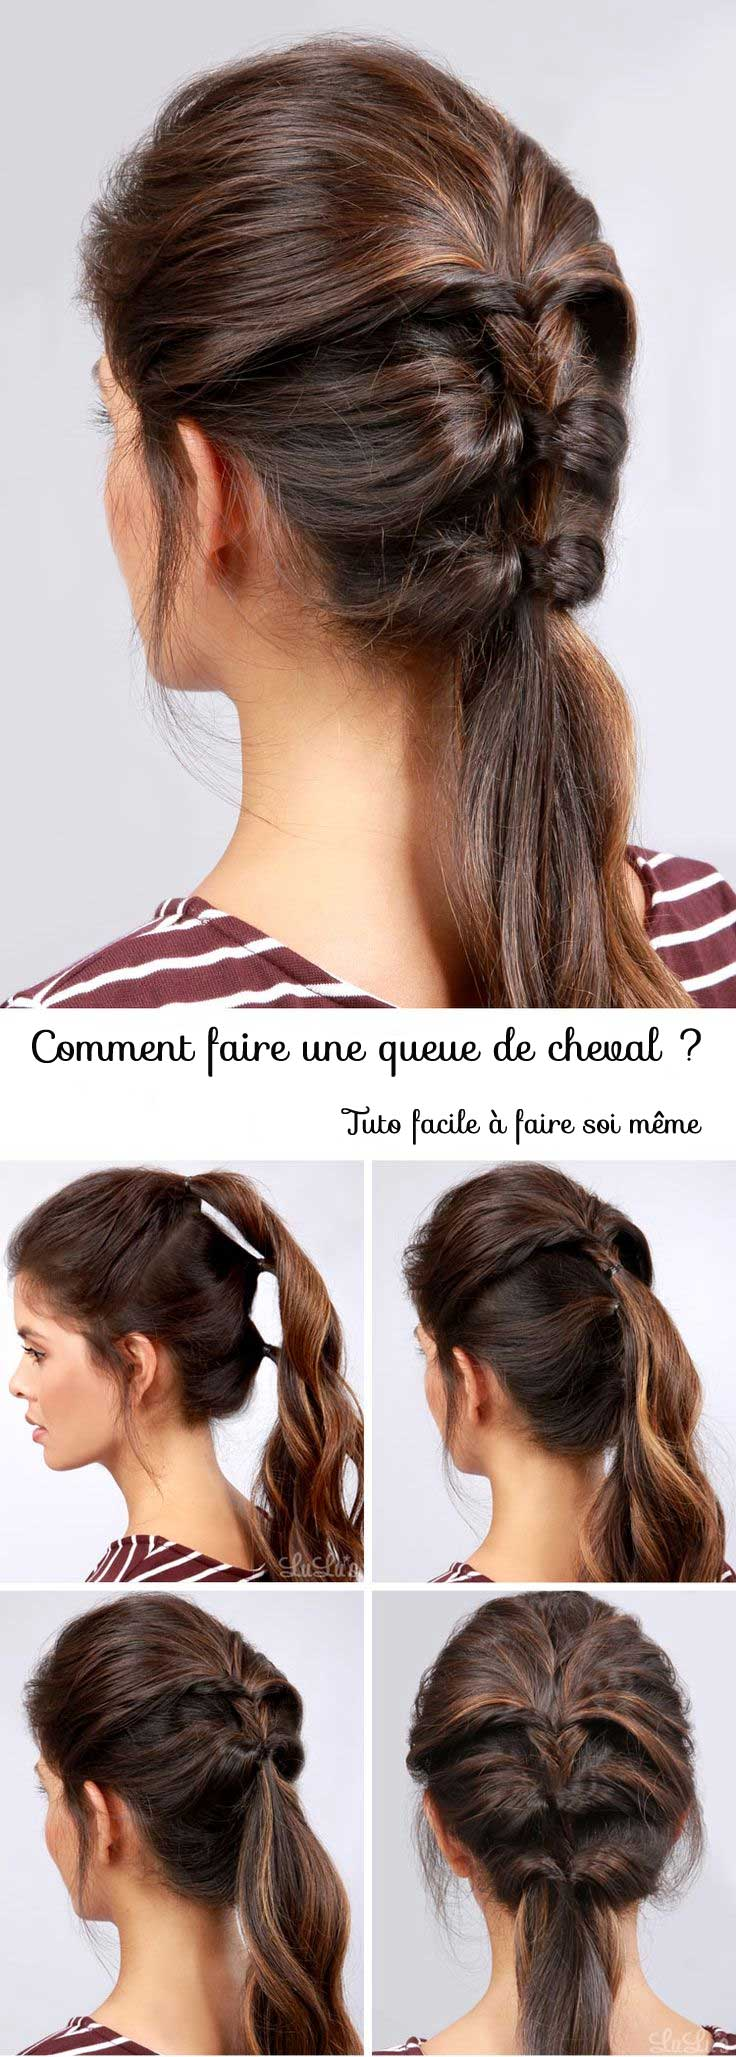 coiffure-queue-de-cheval-tuto